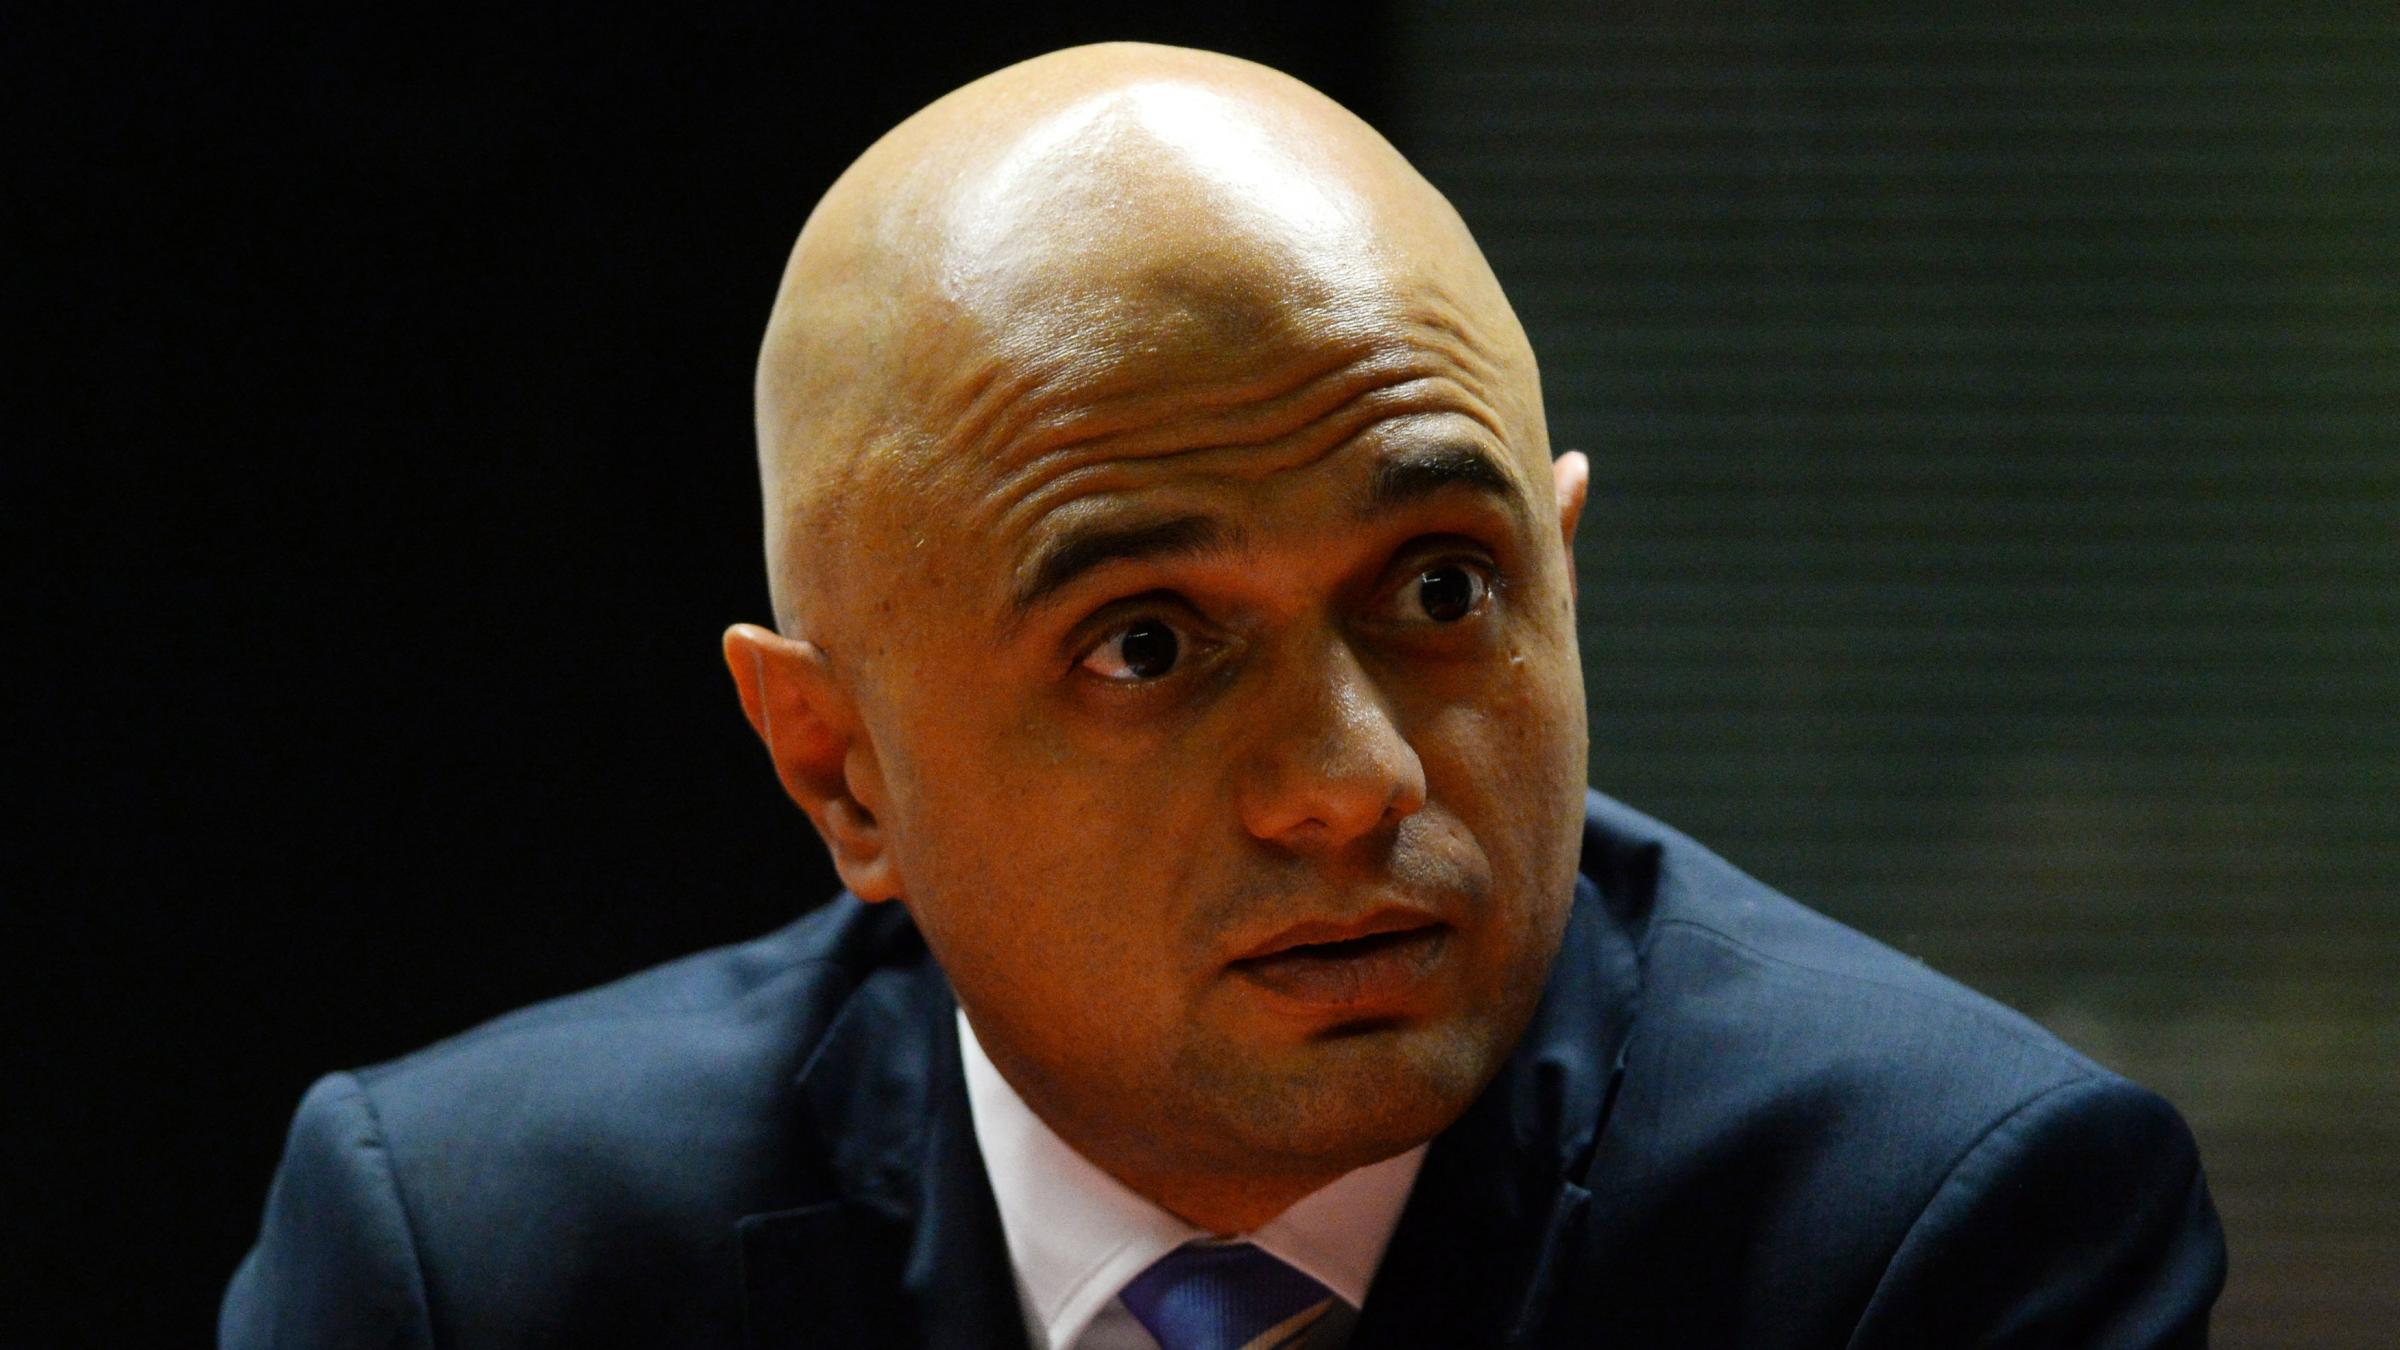 Sajid Javid told to 'get a grip' on English Channel migrant crisis